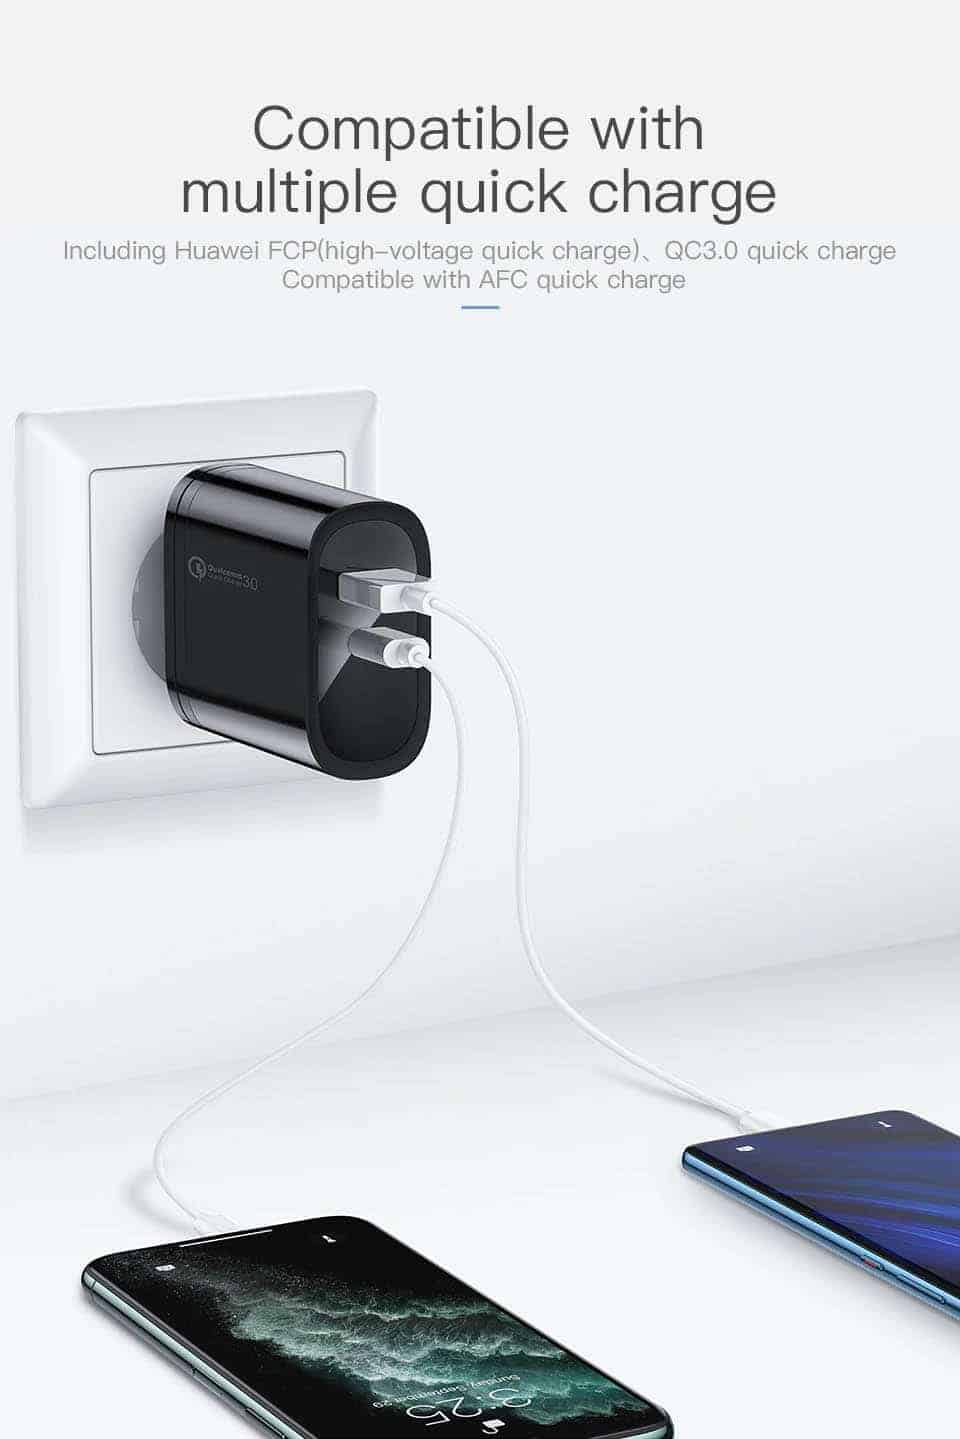 Kuulaa Quick Charger Type C and USB 36W Compatible with multple quick charge